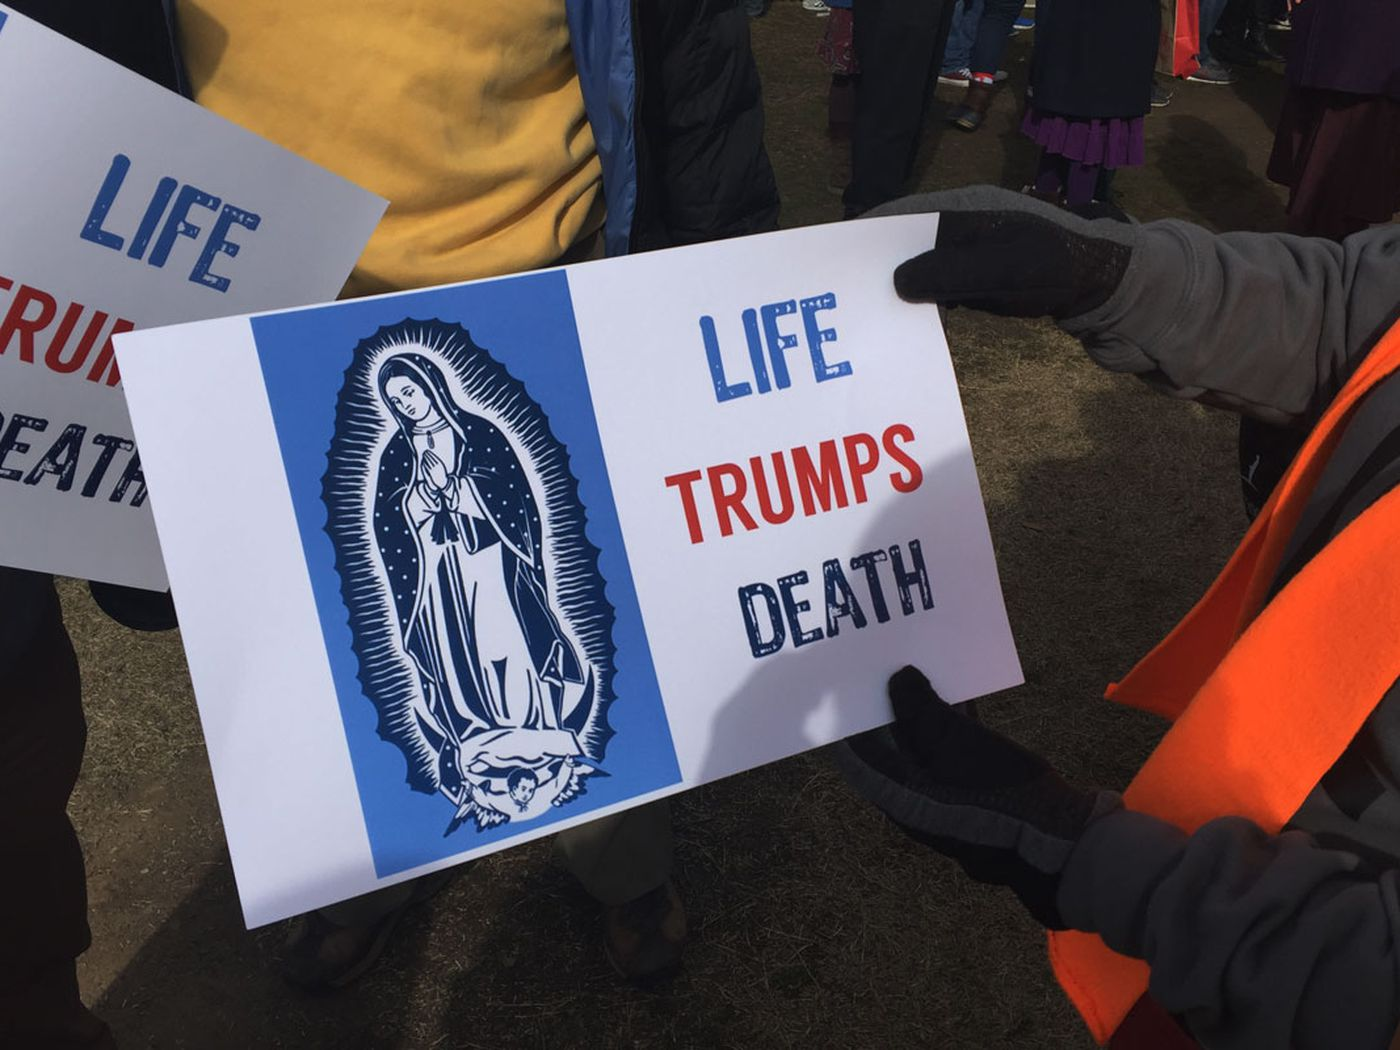 15 March For Life Signs That Show Where The Pro Life Movement Is Today Vox